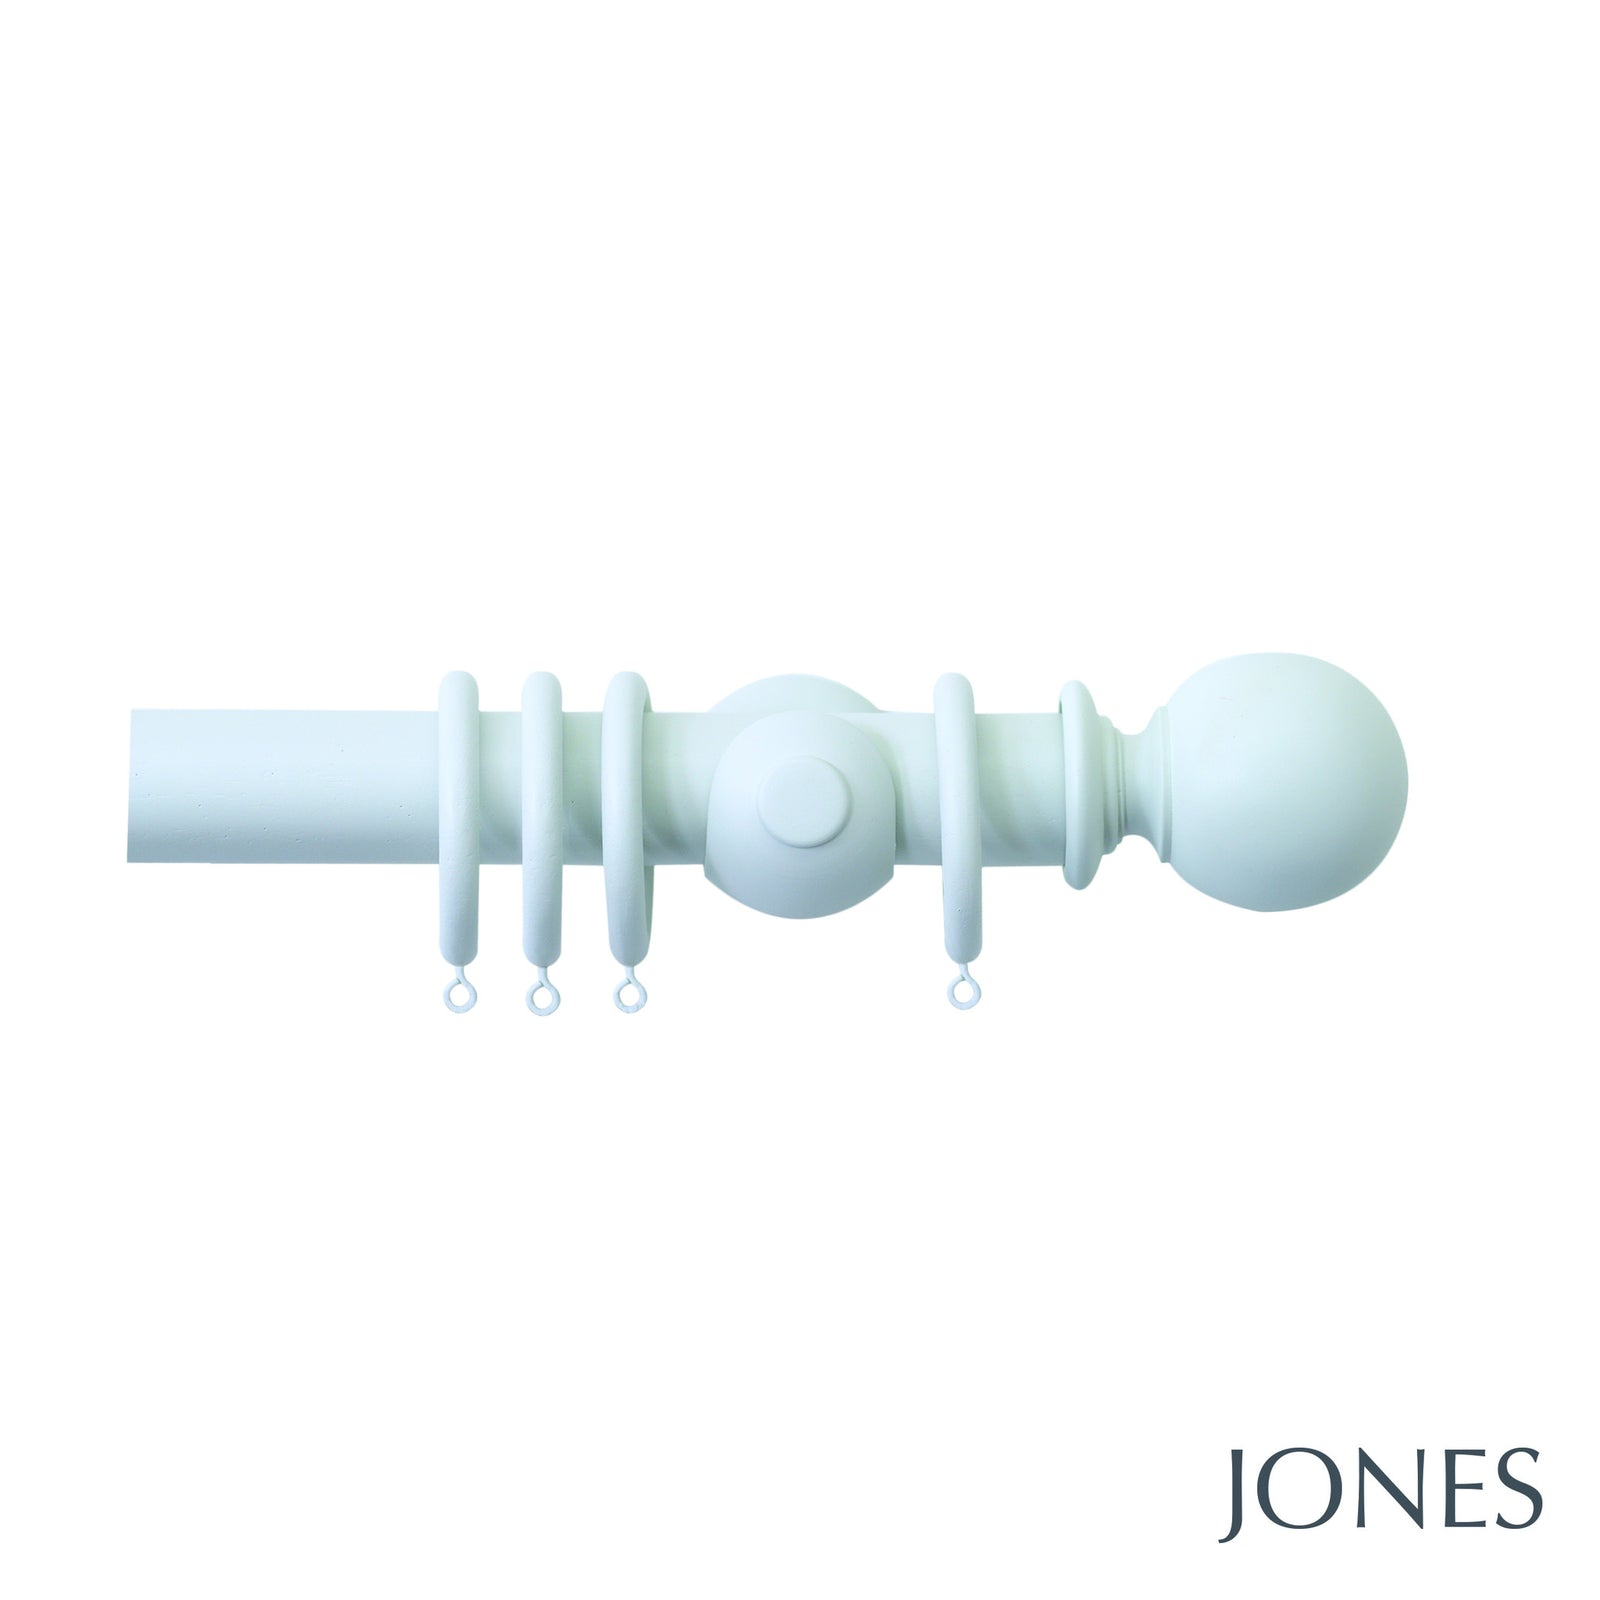 seychelles poles - plain ball finials - 40mm - Applemoon Interiors